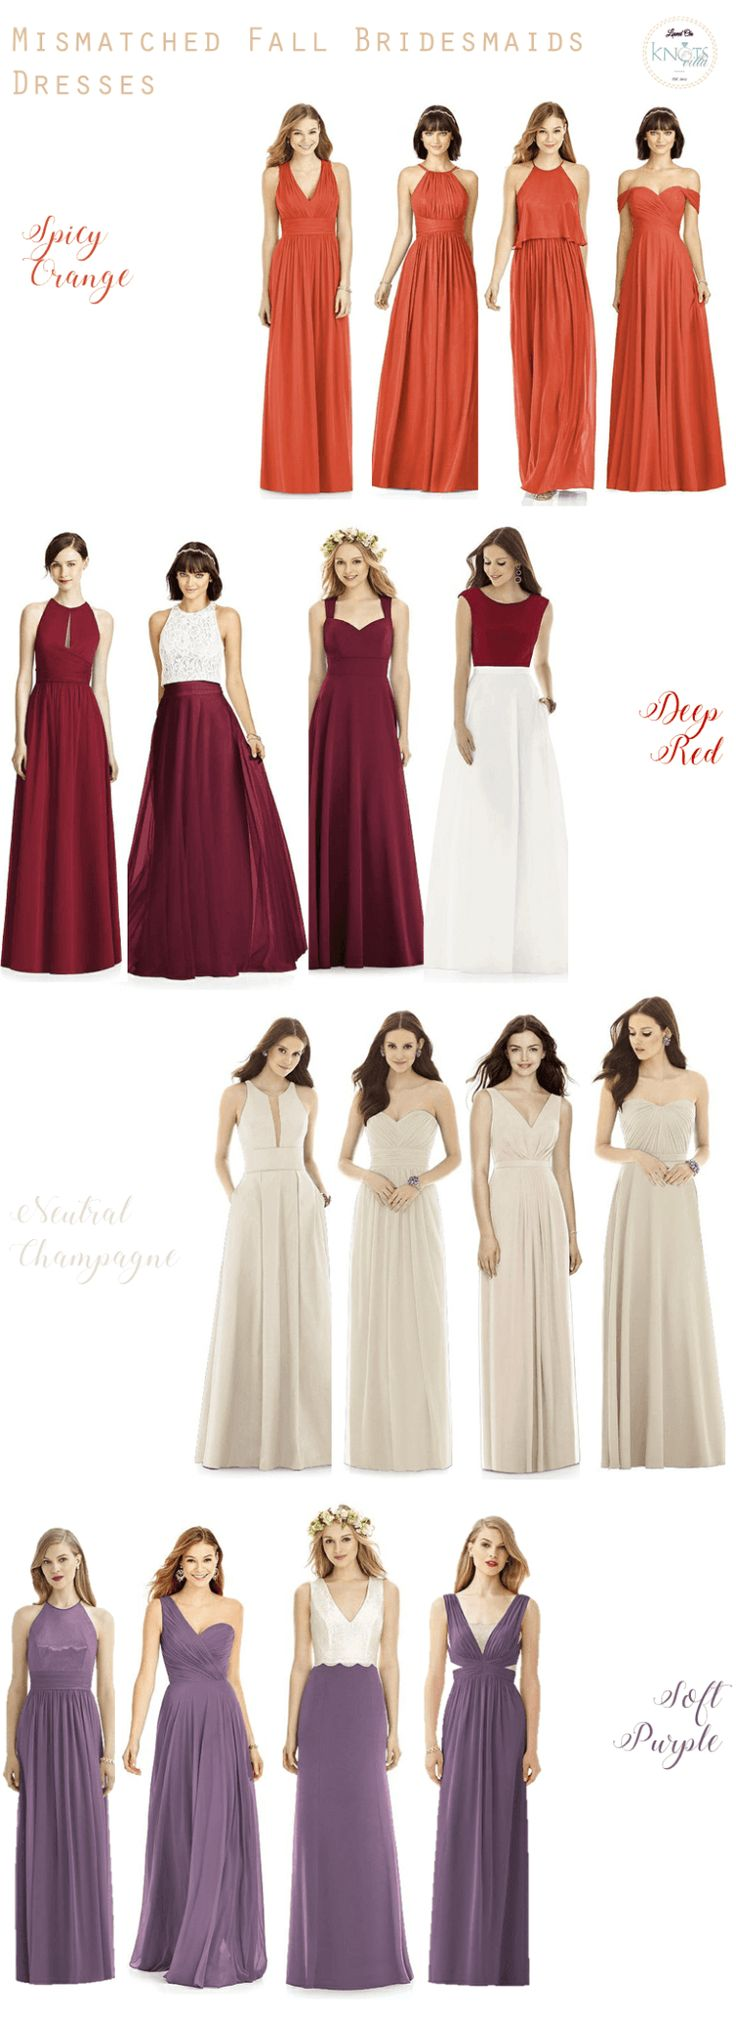 217 best fall wedding ideas images on pinterest fall wedding mismatched fall bridesmaids dresses ombrellifo Image collections